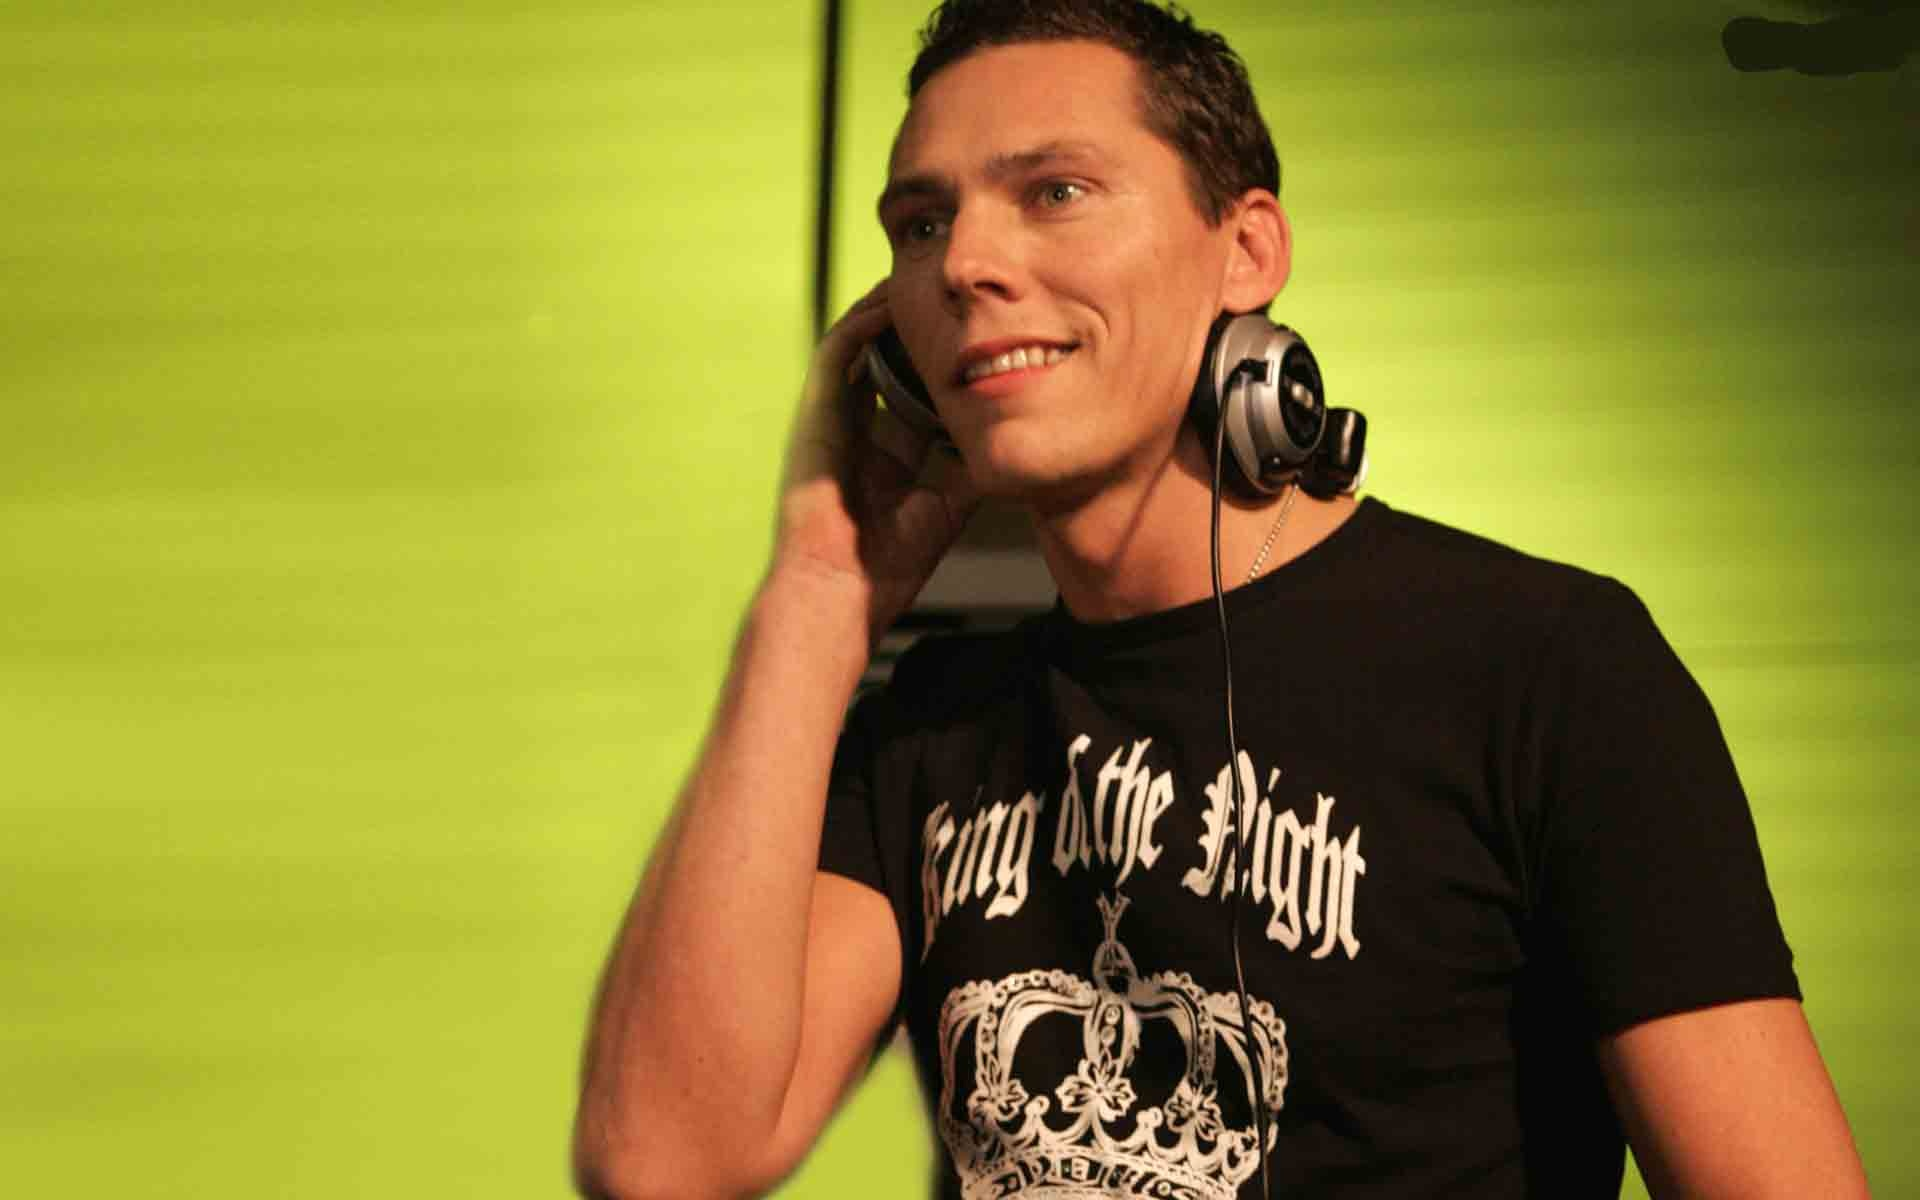 Tiesto - live @ Aragon Ballroom (Chicago, United States) - 23-Dec-2017